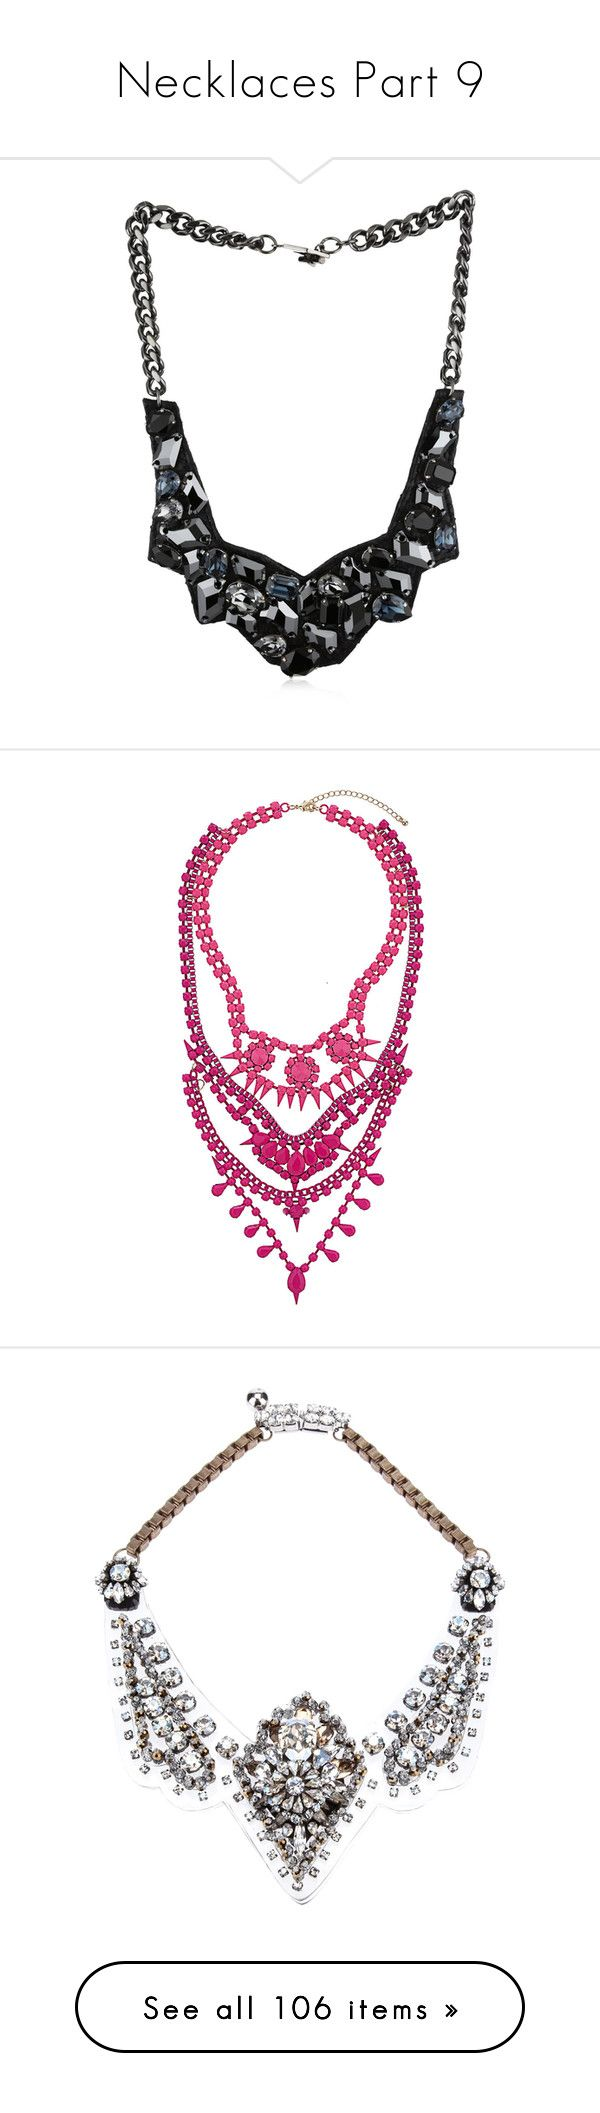 """Necklaces Part 9"" by allison-epps ❤ liked on Polyvore featuring jewelry, necklaces, long bib necklace, bib necklaces, ted rossi jewelry, chain bib necklace, geometric necklace, pink, bib statement necklace and beading necklaces"